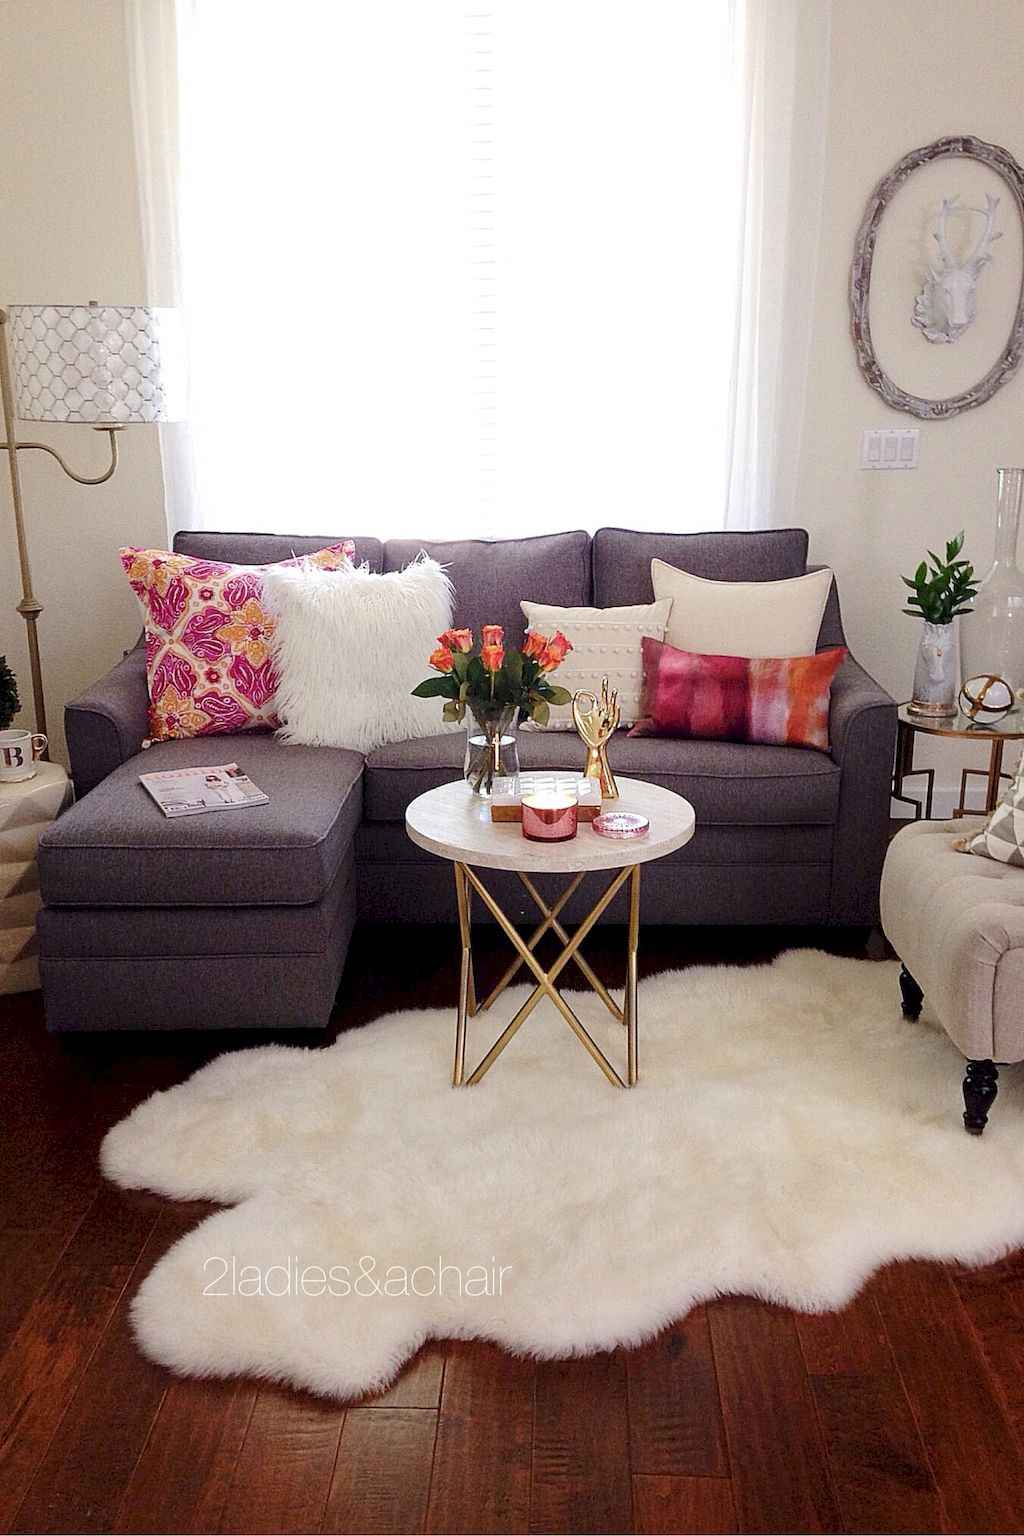 Cool small apartment decorating ideas on a budget (47)